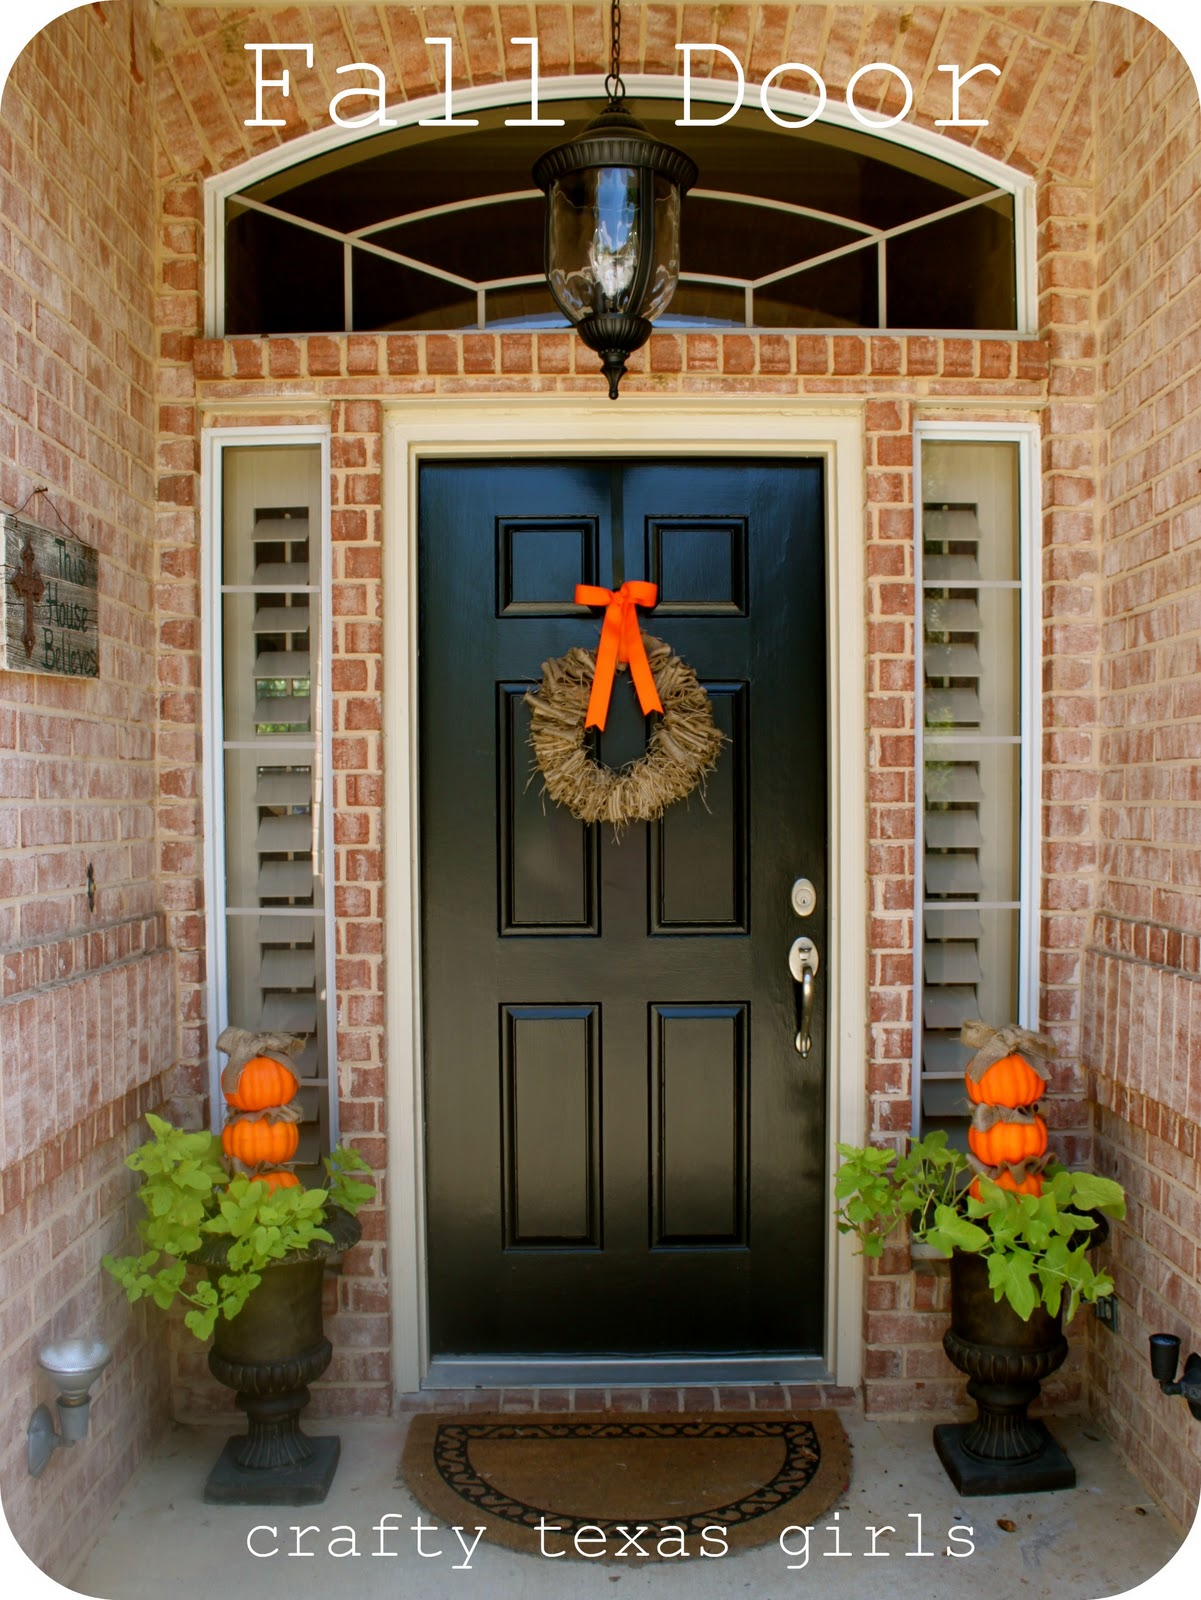 Crafty texas girls fall door Front veranda decorating ideas